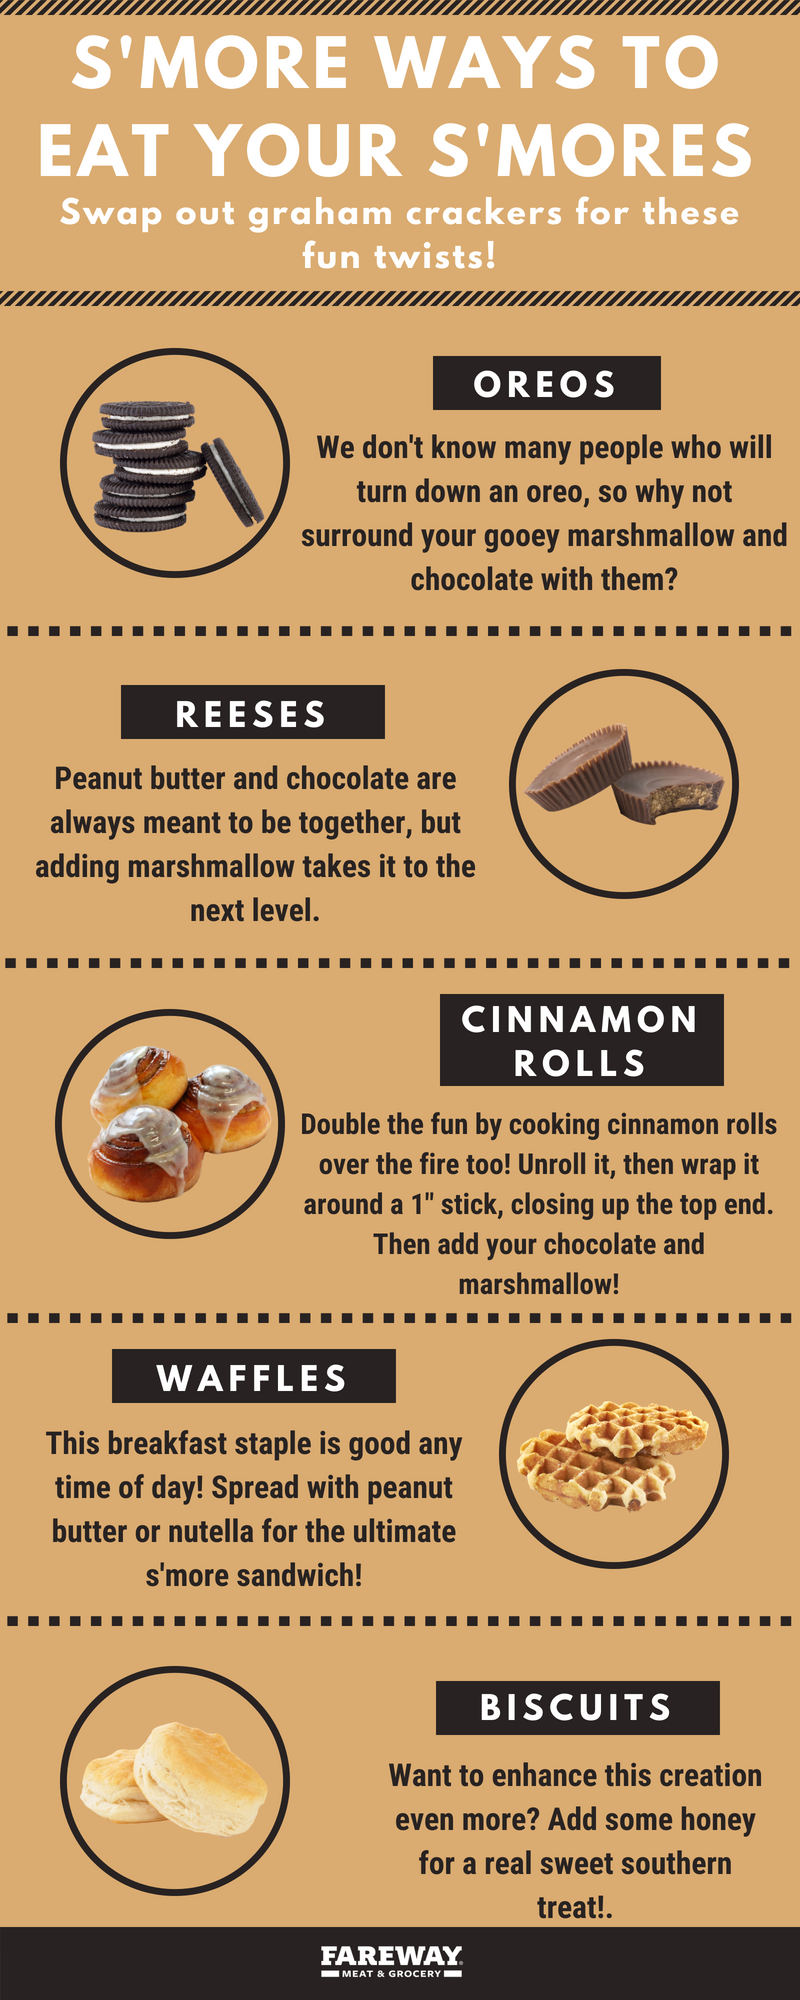 Image of multiple snacking foods to eat s'mores with.